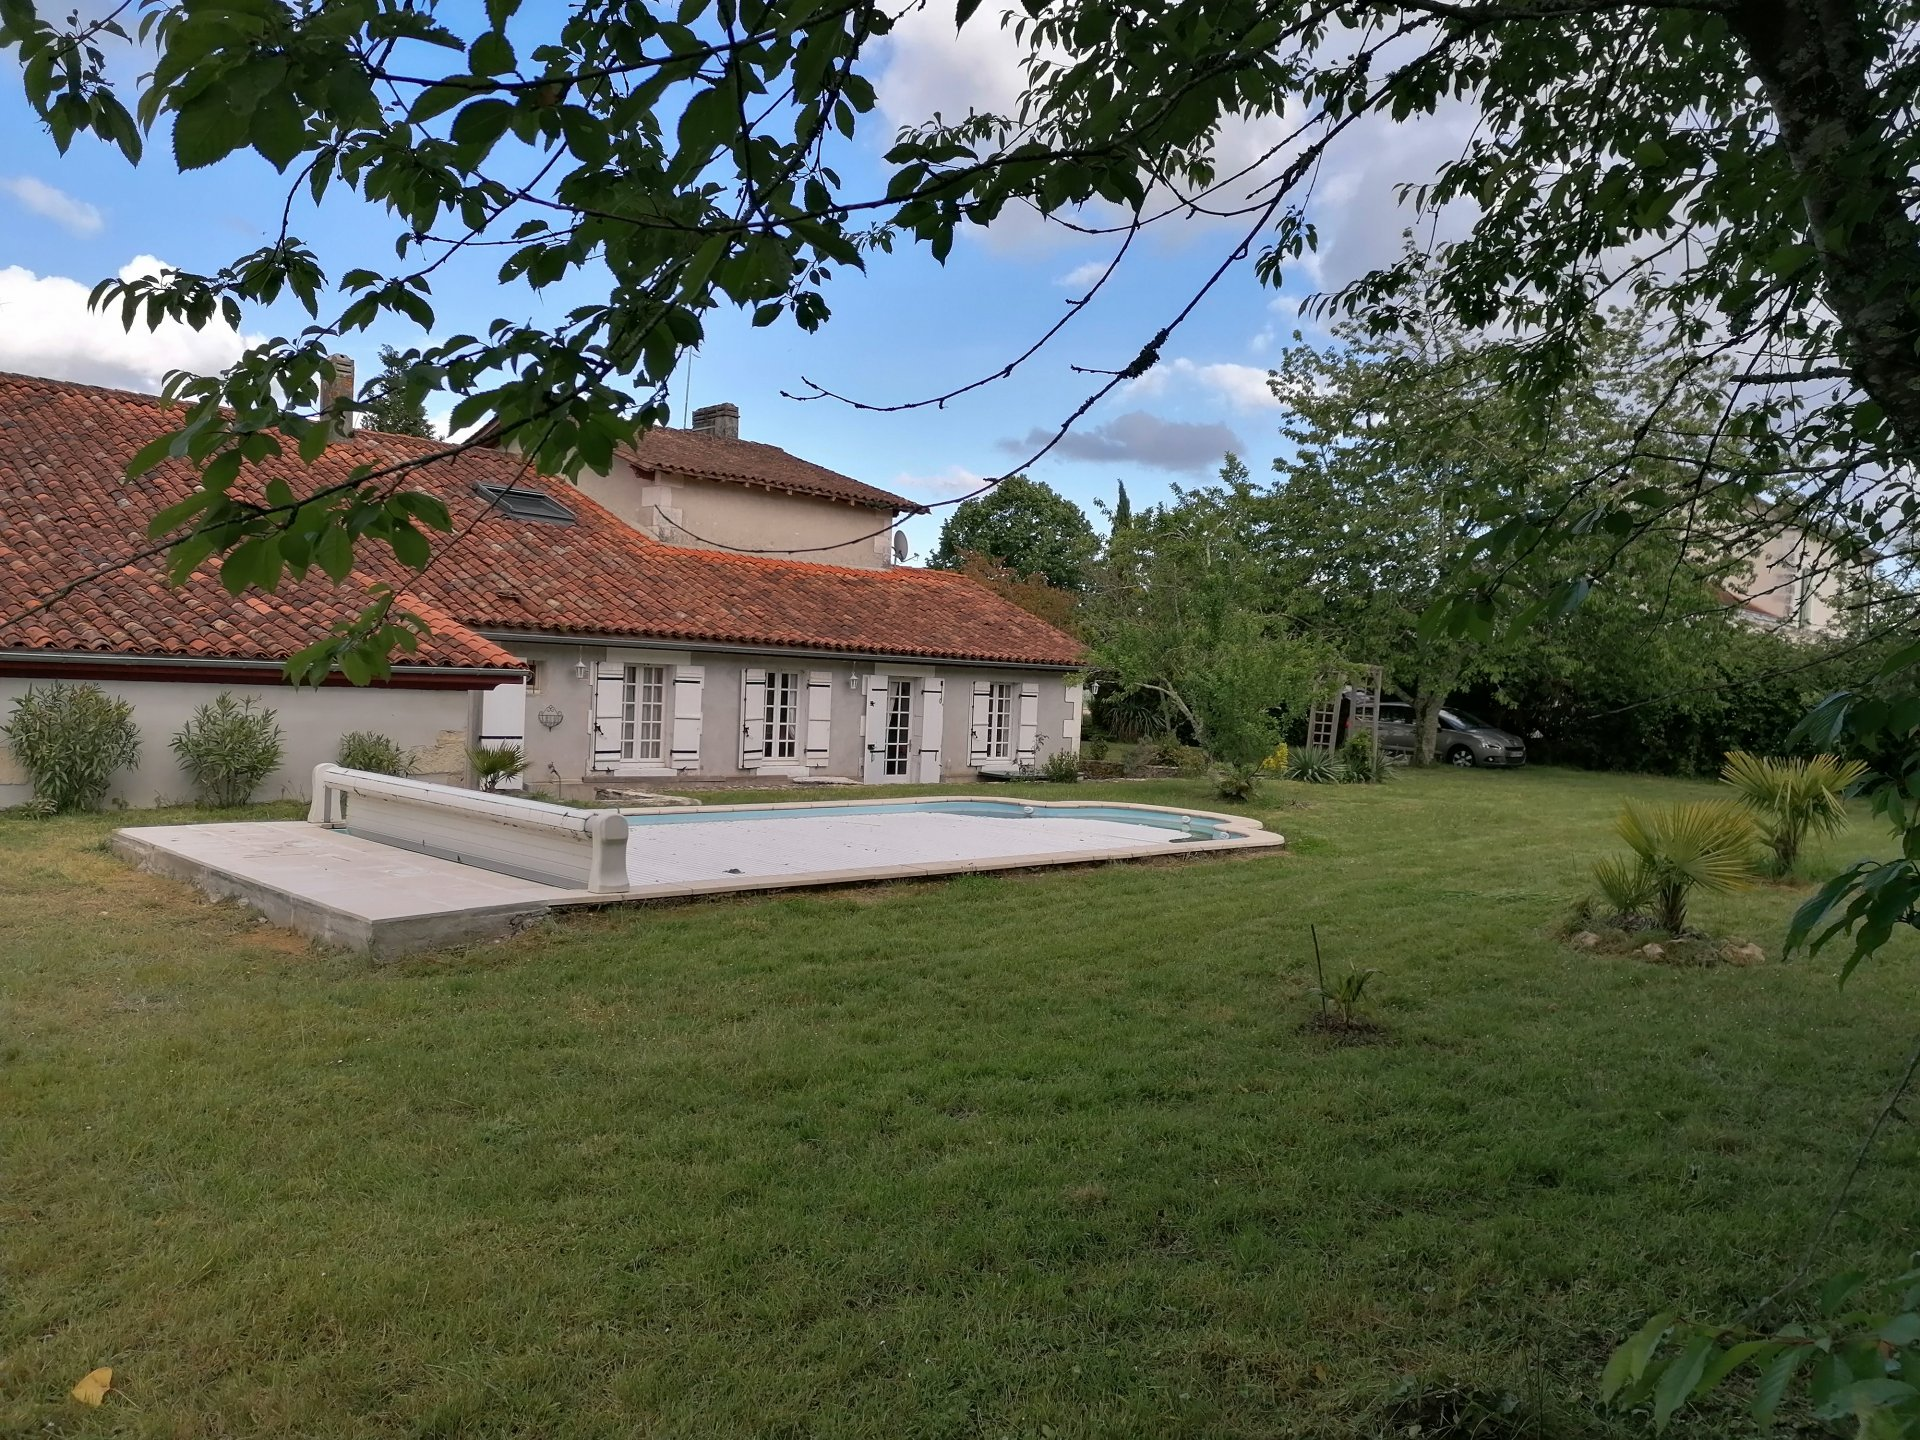 Renovated 4 bed village house with swimming pool